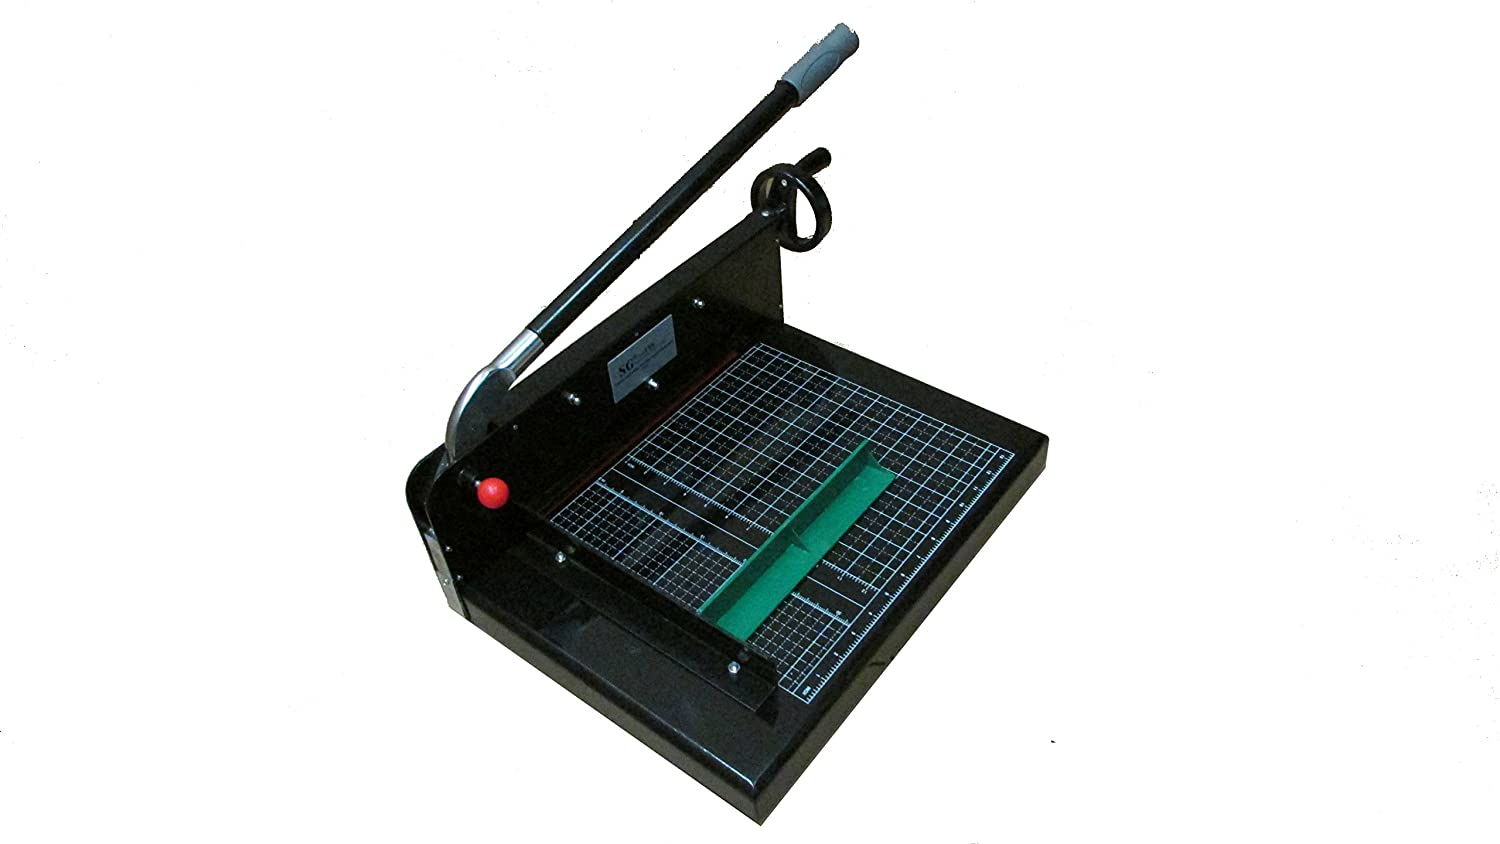 Guillotine Desktop Stack Paper Cutter COME SG -198 - 12